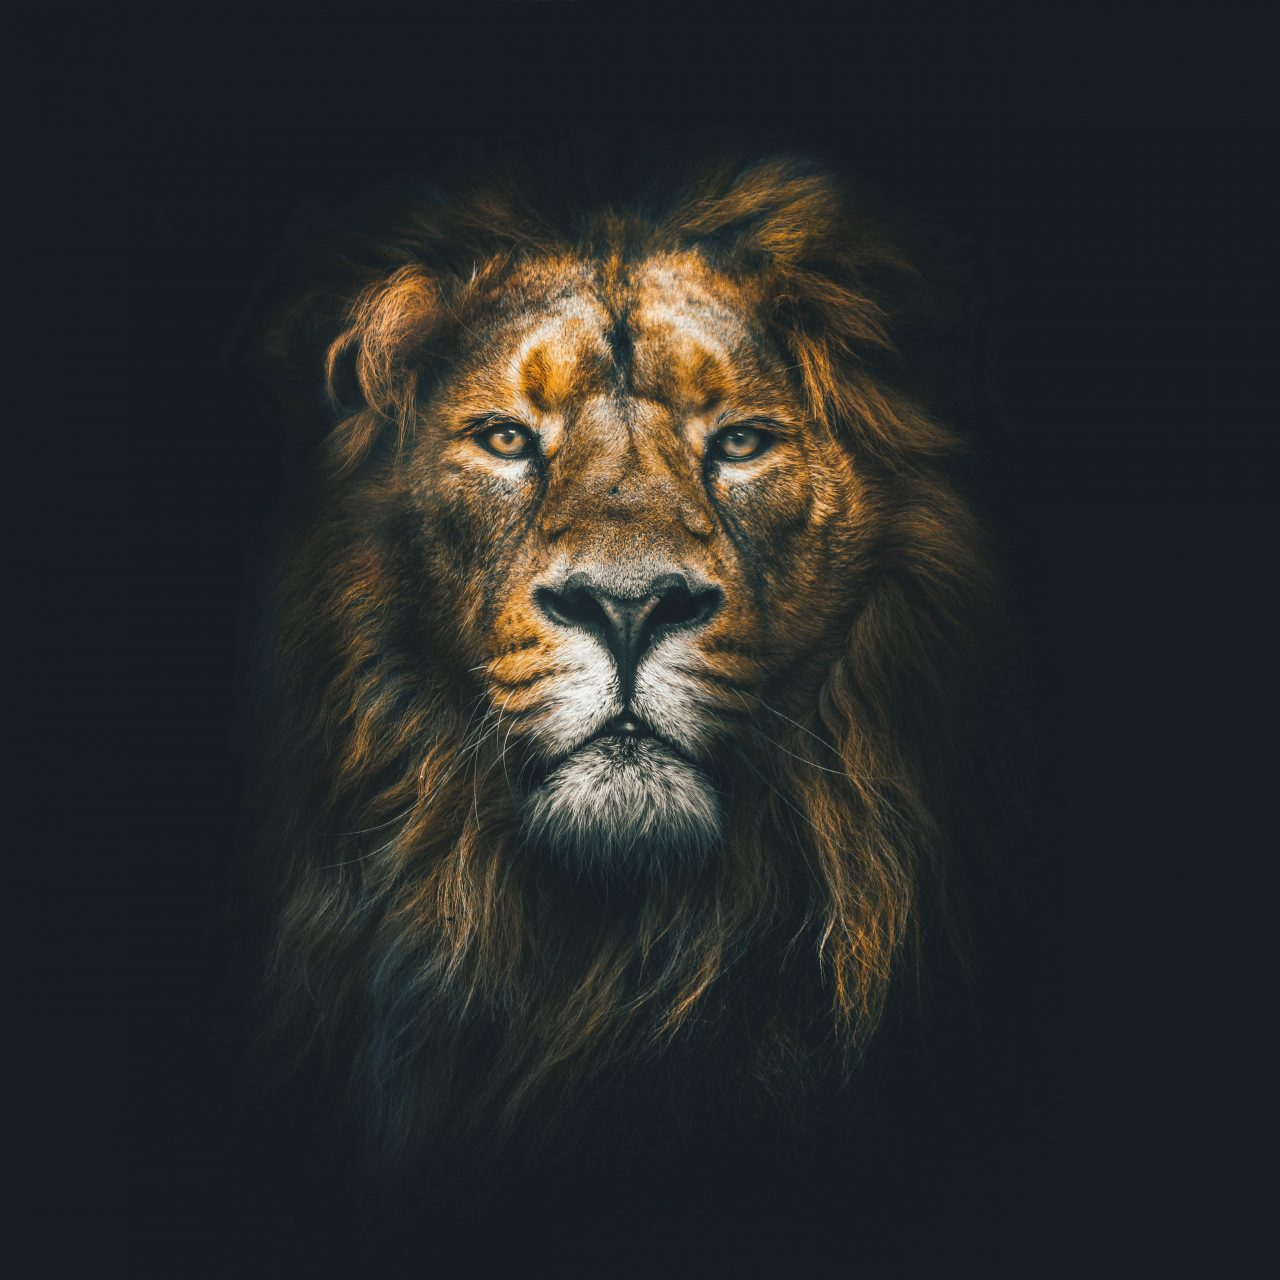 Lion Face Closeup Wild Animal Wildlife 8K Wallpaper